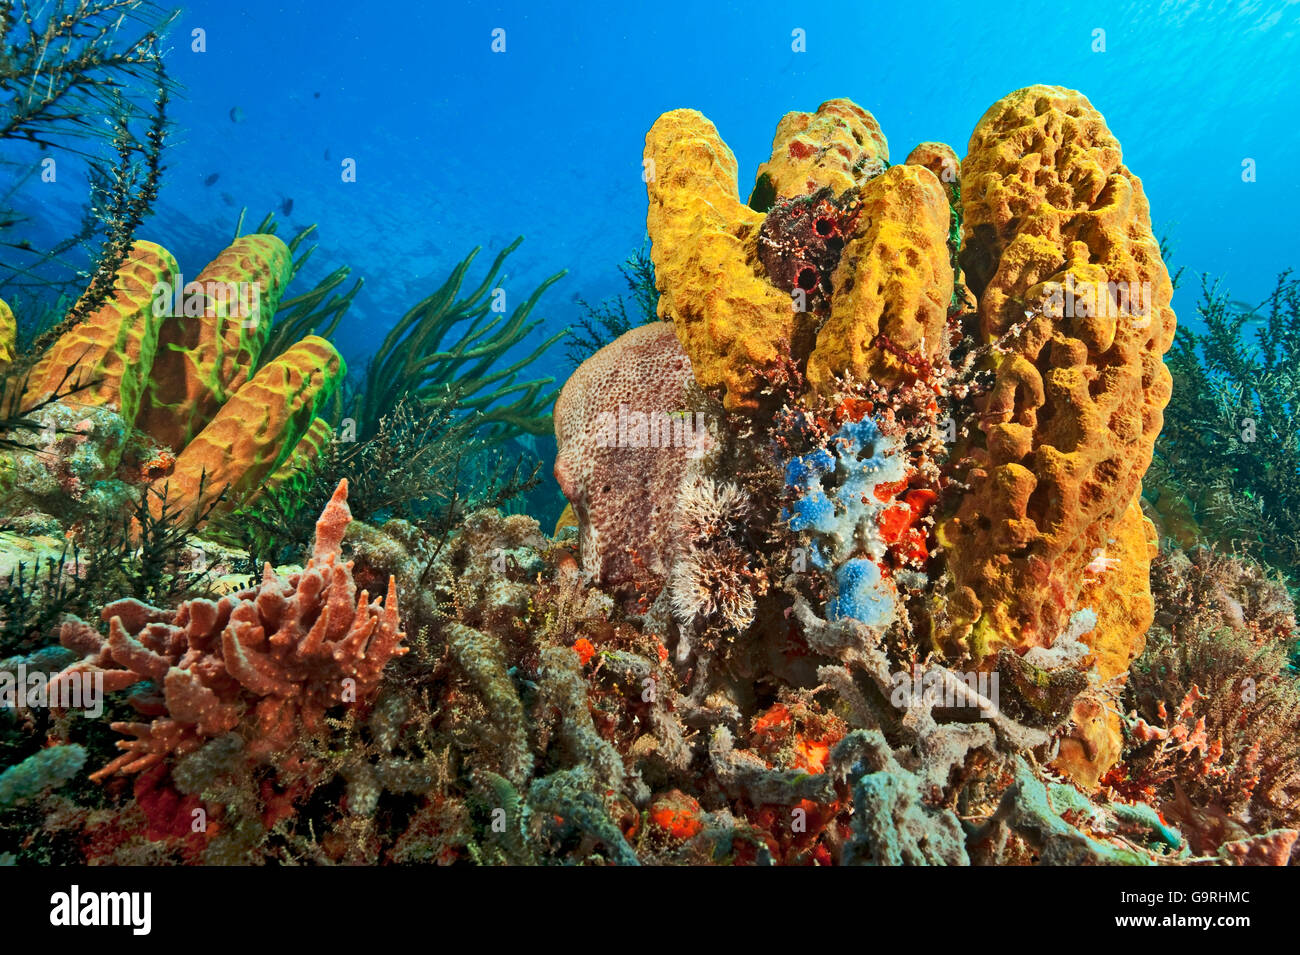 Coral reef, sponges, soft coral - Stock Image